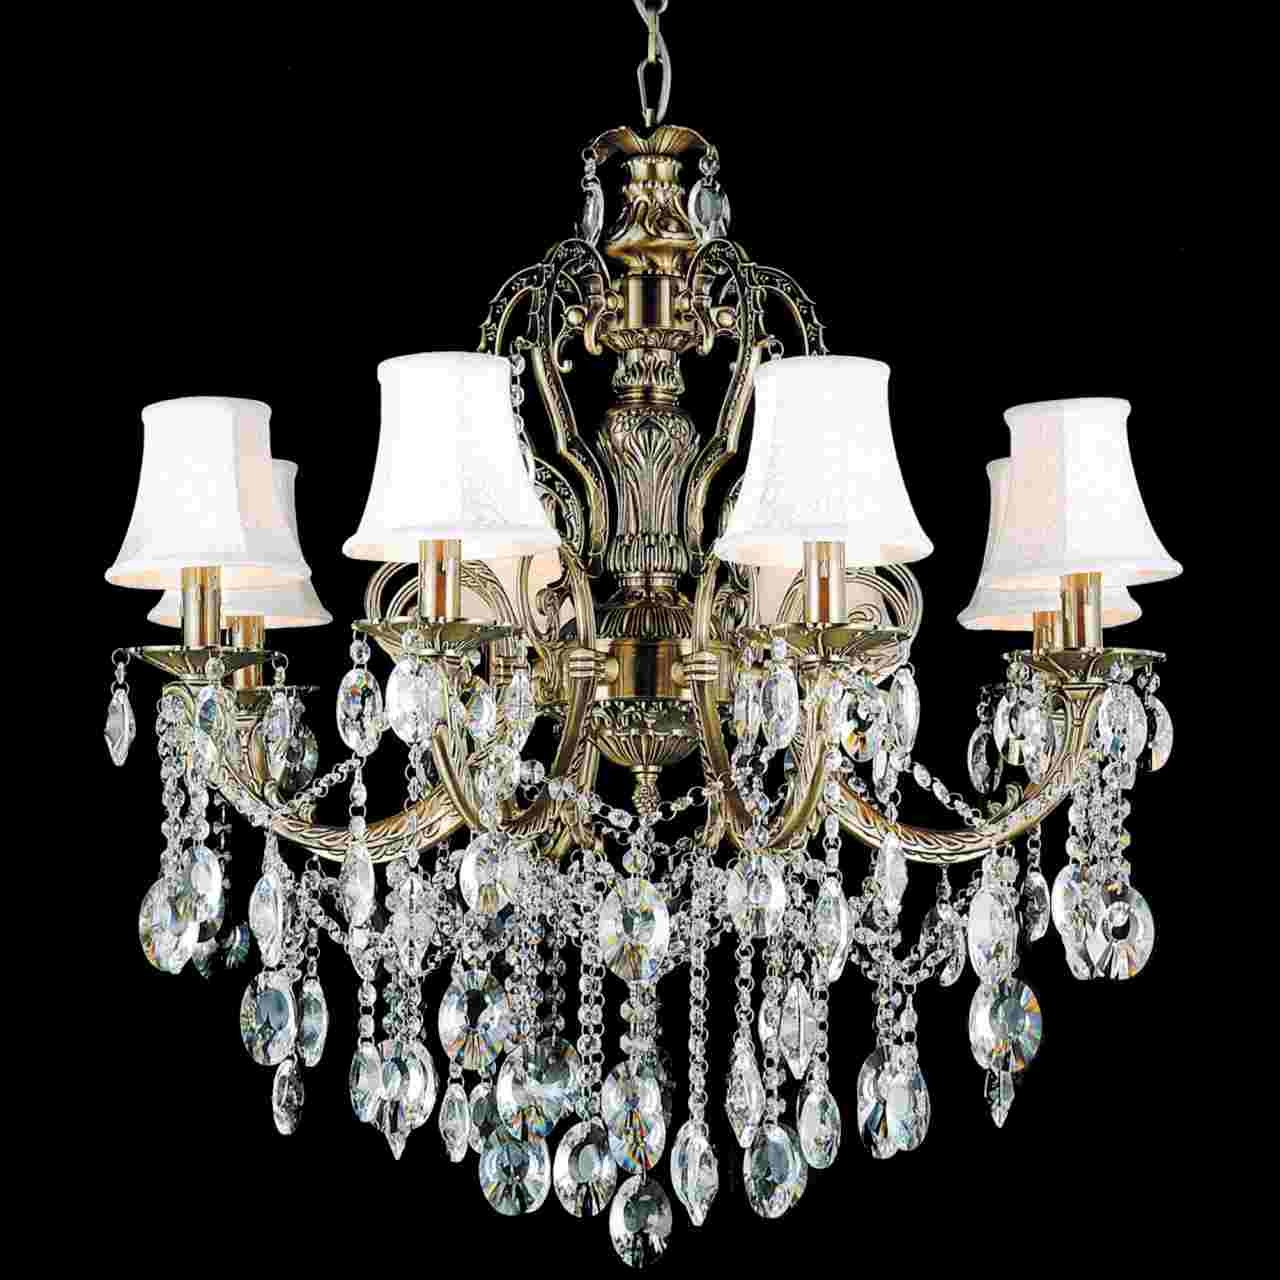 Brizzo Lighting Stores 30 Ottone Traditional Candle Round With Chandelier Lamp Shades (Image 5 of 25)